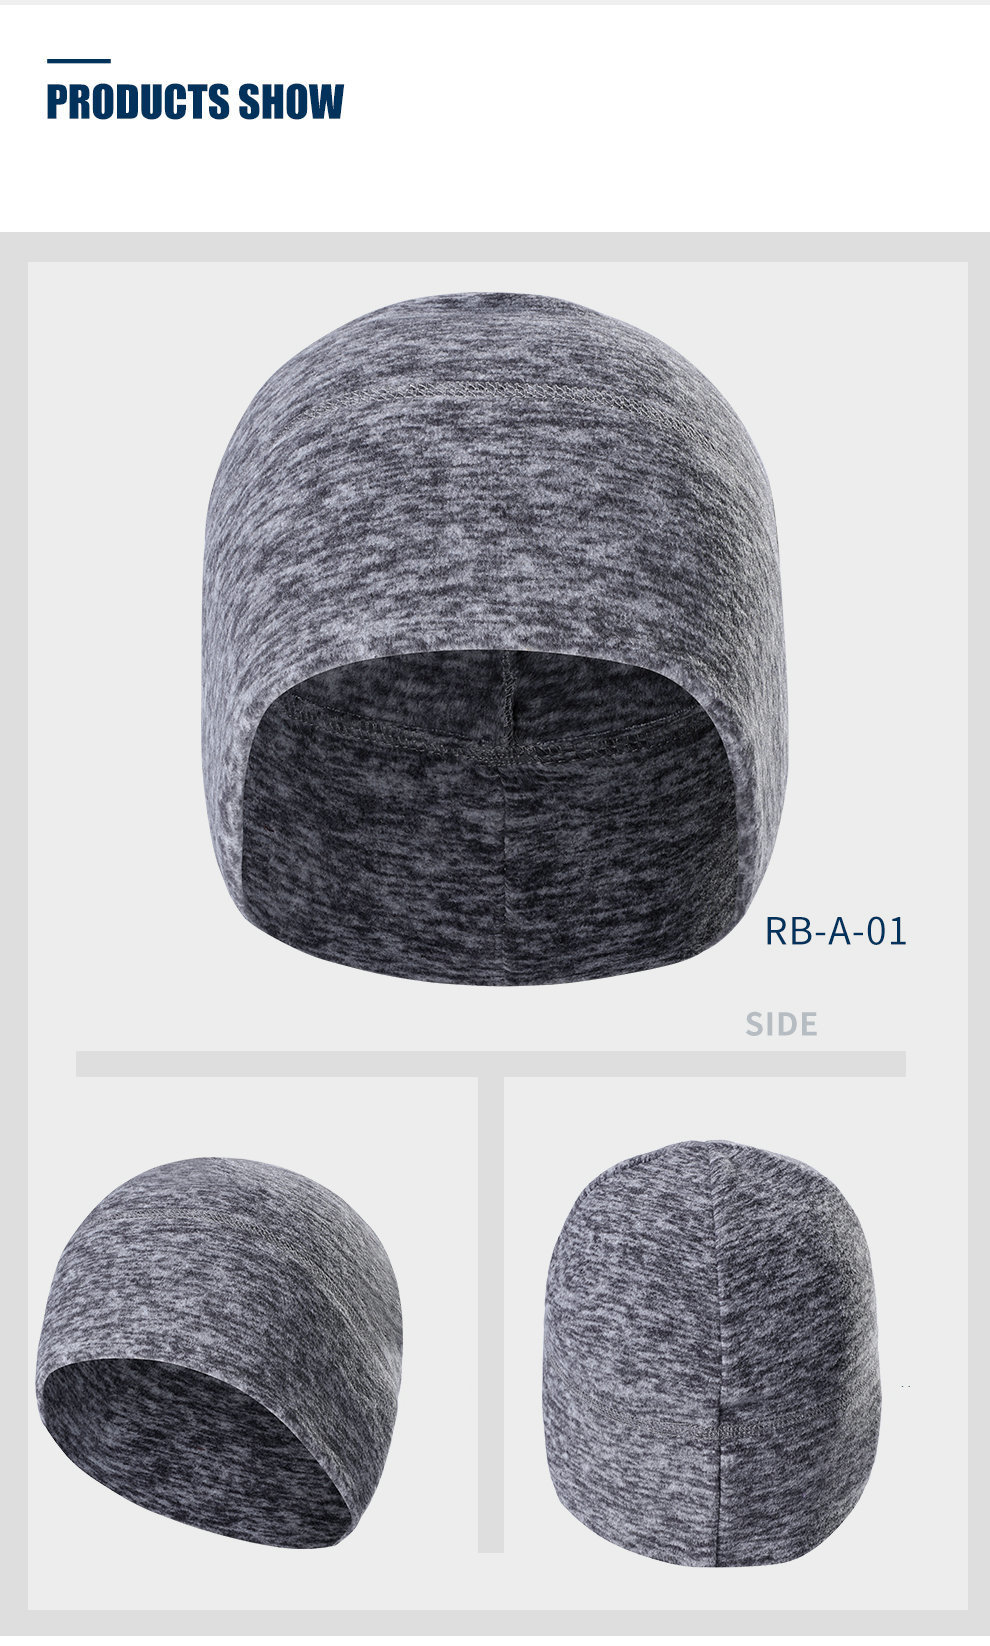 Cycling Cap Fleece Keep Warm Mens Winter Hats Thickened Thermal Head Bandanas for Outdoor Running Skiing Sports Snowboarding Cap (10)